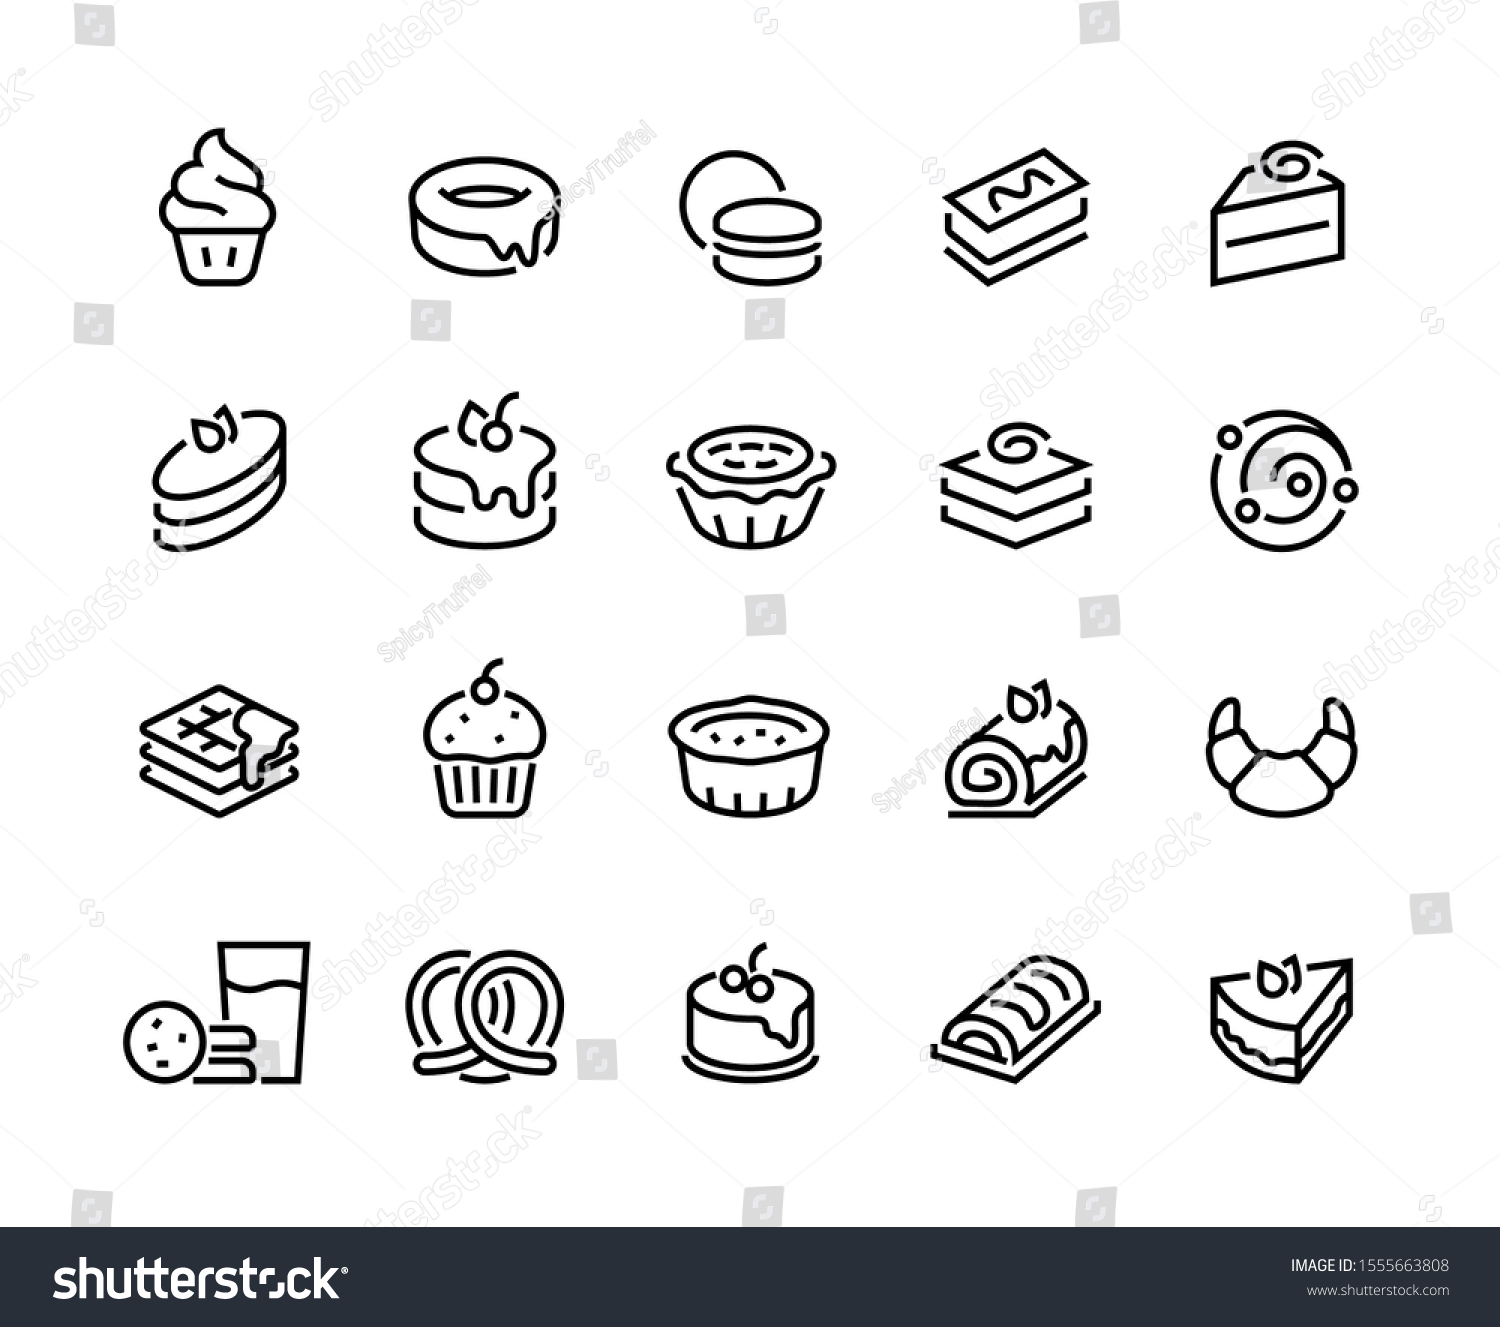 Cakes and cookies line icons. Bakery and sweet food pictogram, croissant donuts cupcakes cookies brownies and pies. Vector illustration confectionery dessert products line icon set